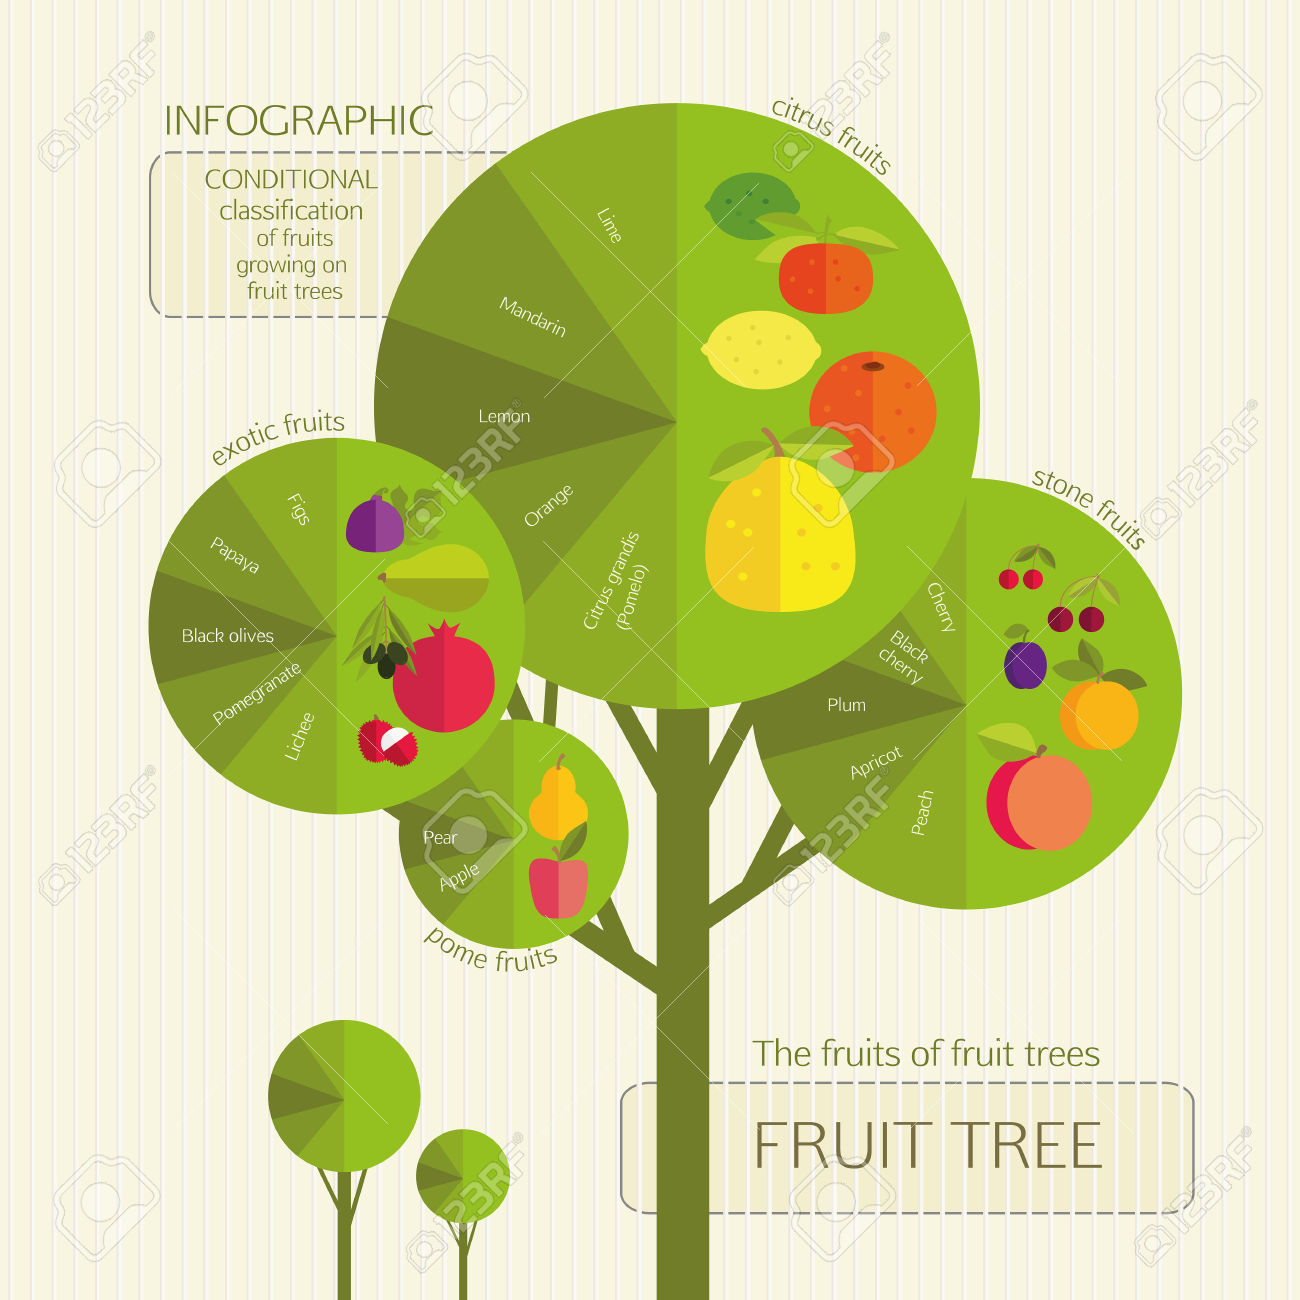 free fruit tree clipart - photo #48